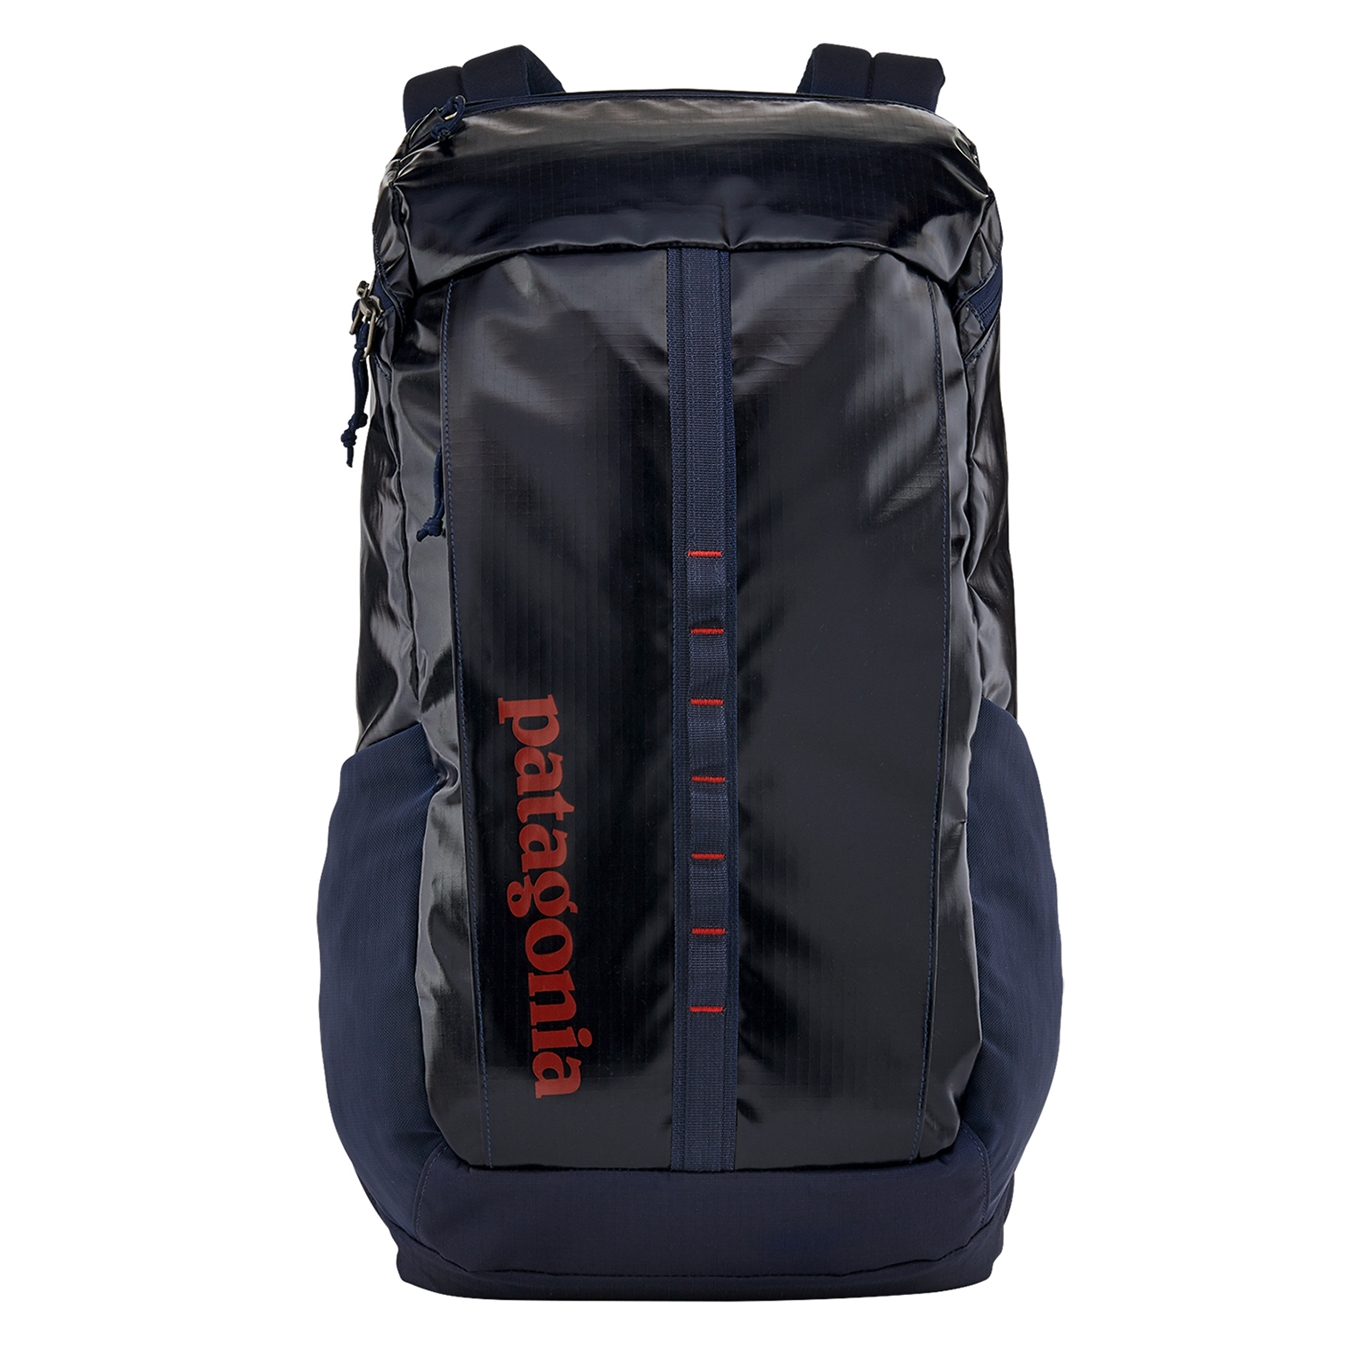 Patagonia Black Hole Pack 25L classic navy backpack